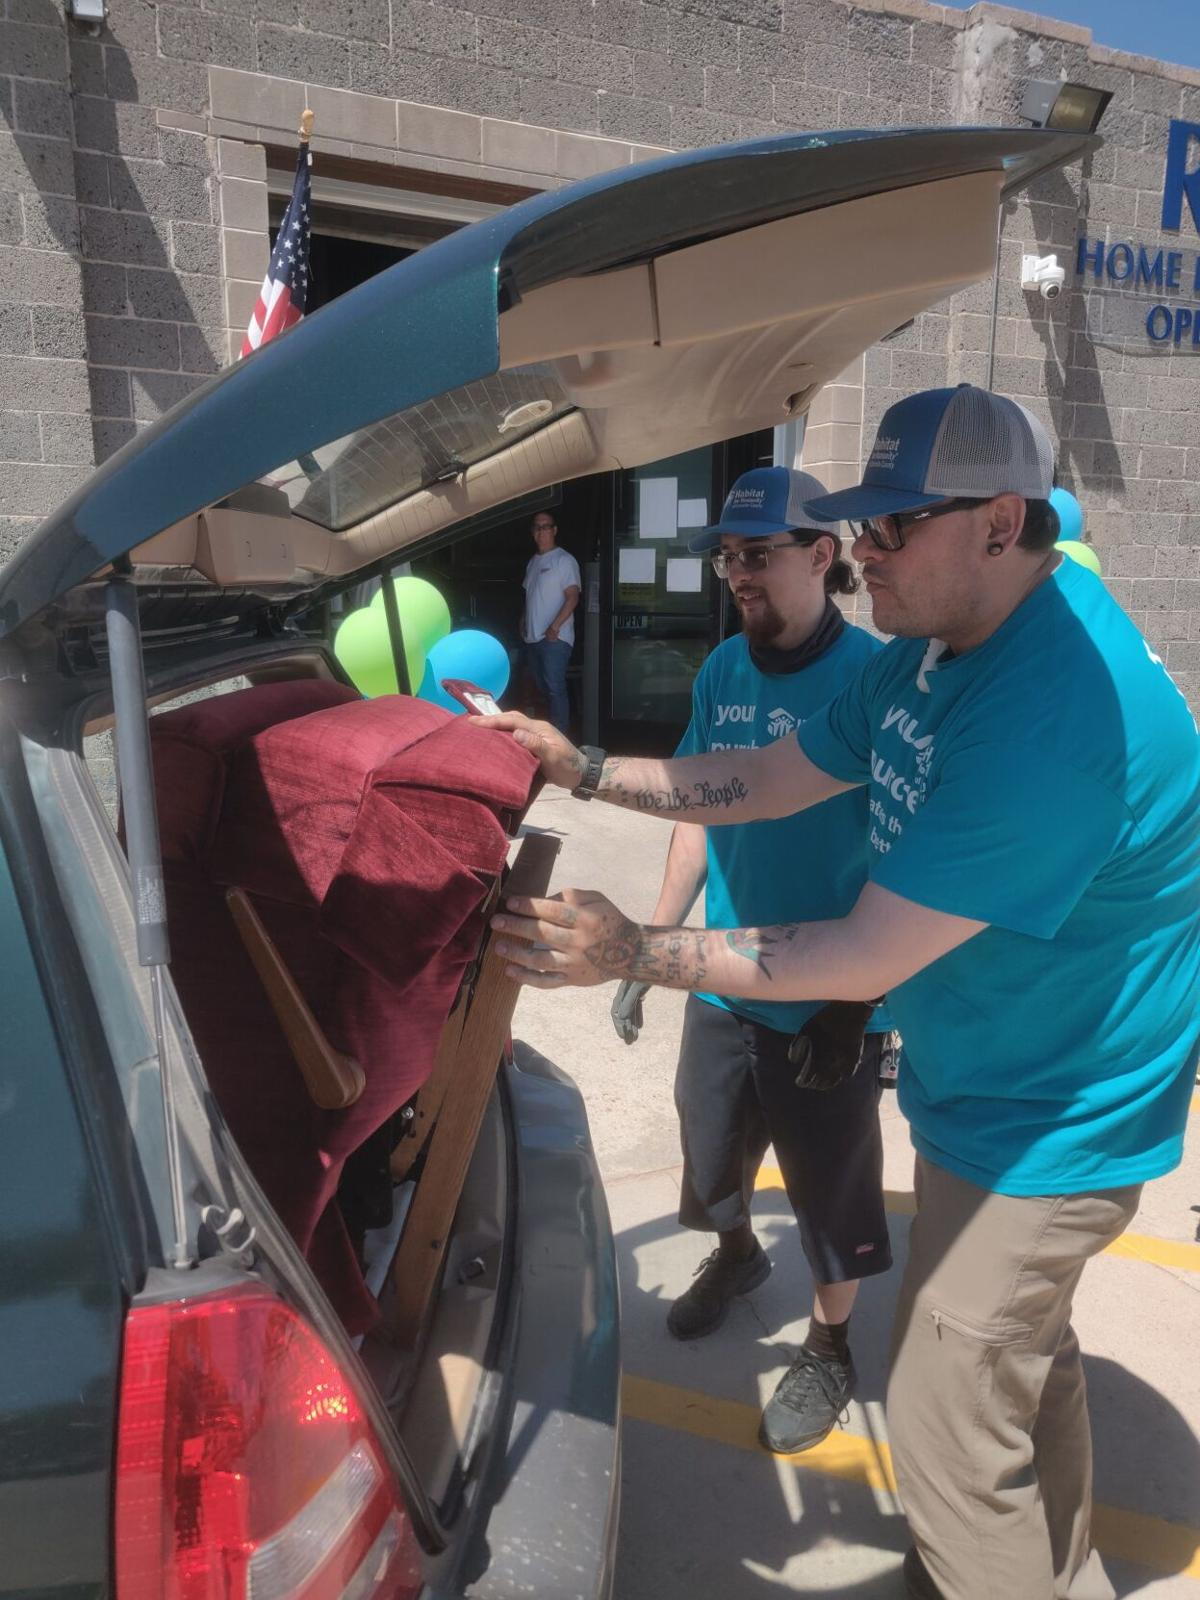 Habitat for Humanity Store Manager Christopher Jounos (L) and Donation Assistant Brandon Wilbourne (R) load a recliner photo